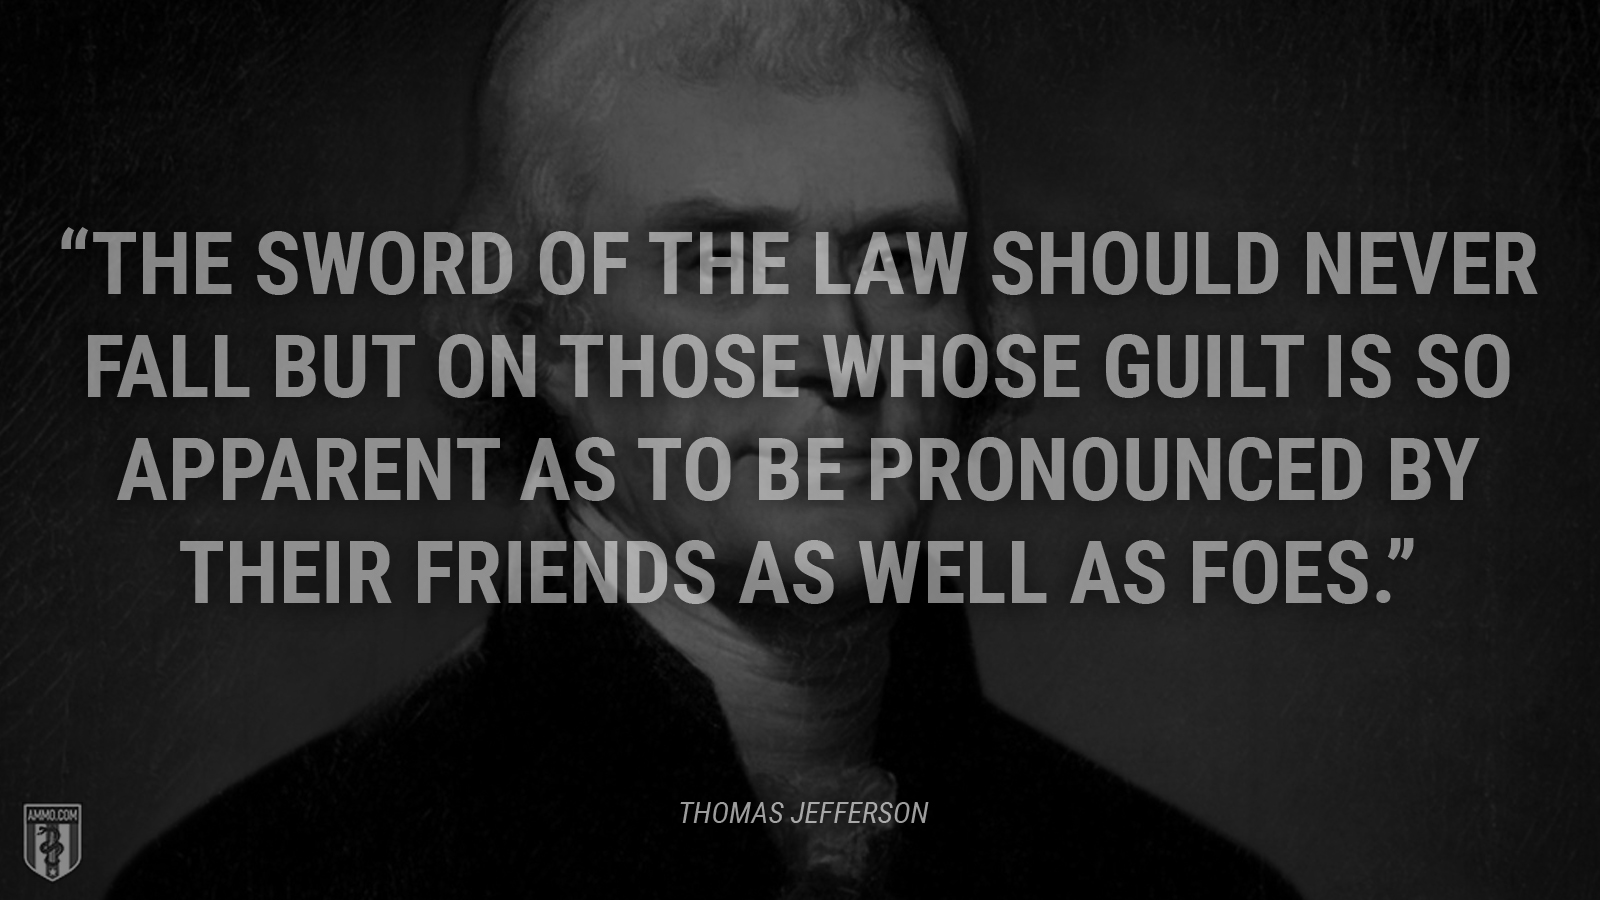 """The sword of the law should never fall but on those whose guilt is so apparent as to be pronounced by their friends as well as foes."" - Thomas Jefferson"